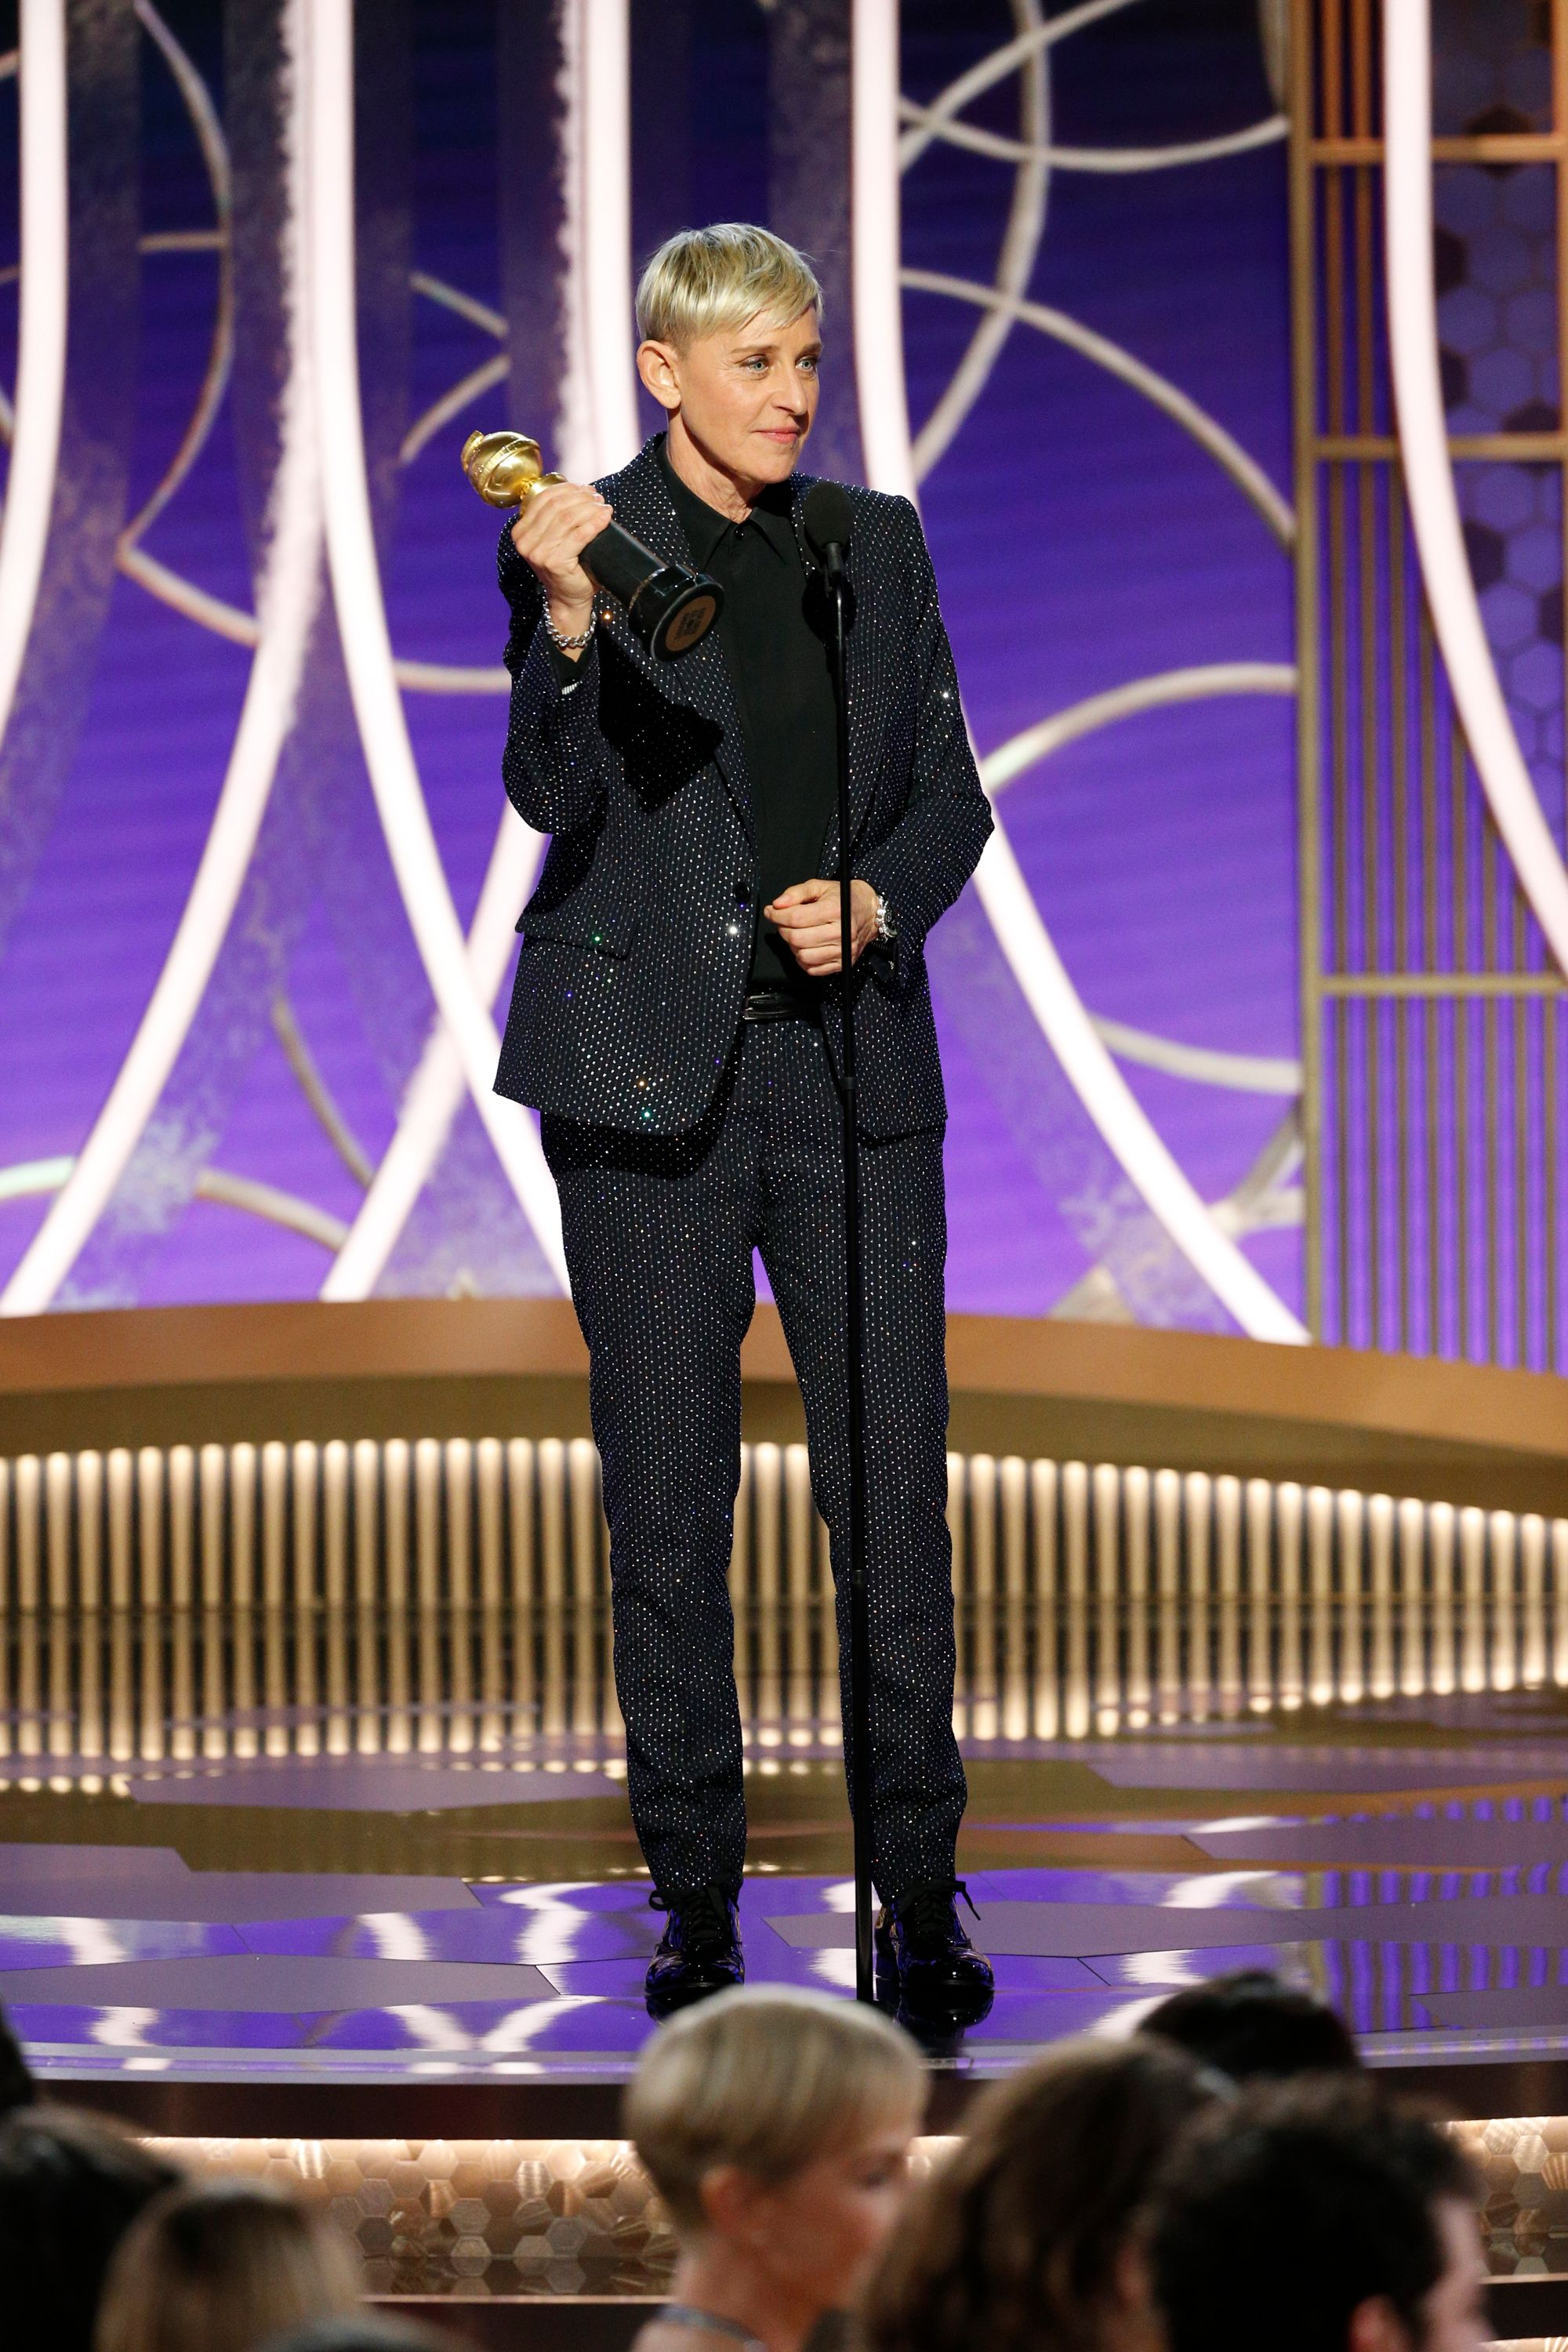 Ellen DeGeneres speaks onstage during the Oscars at the Dolby Theatre on March 2, 2014 | Photo: Getty Images